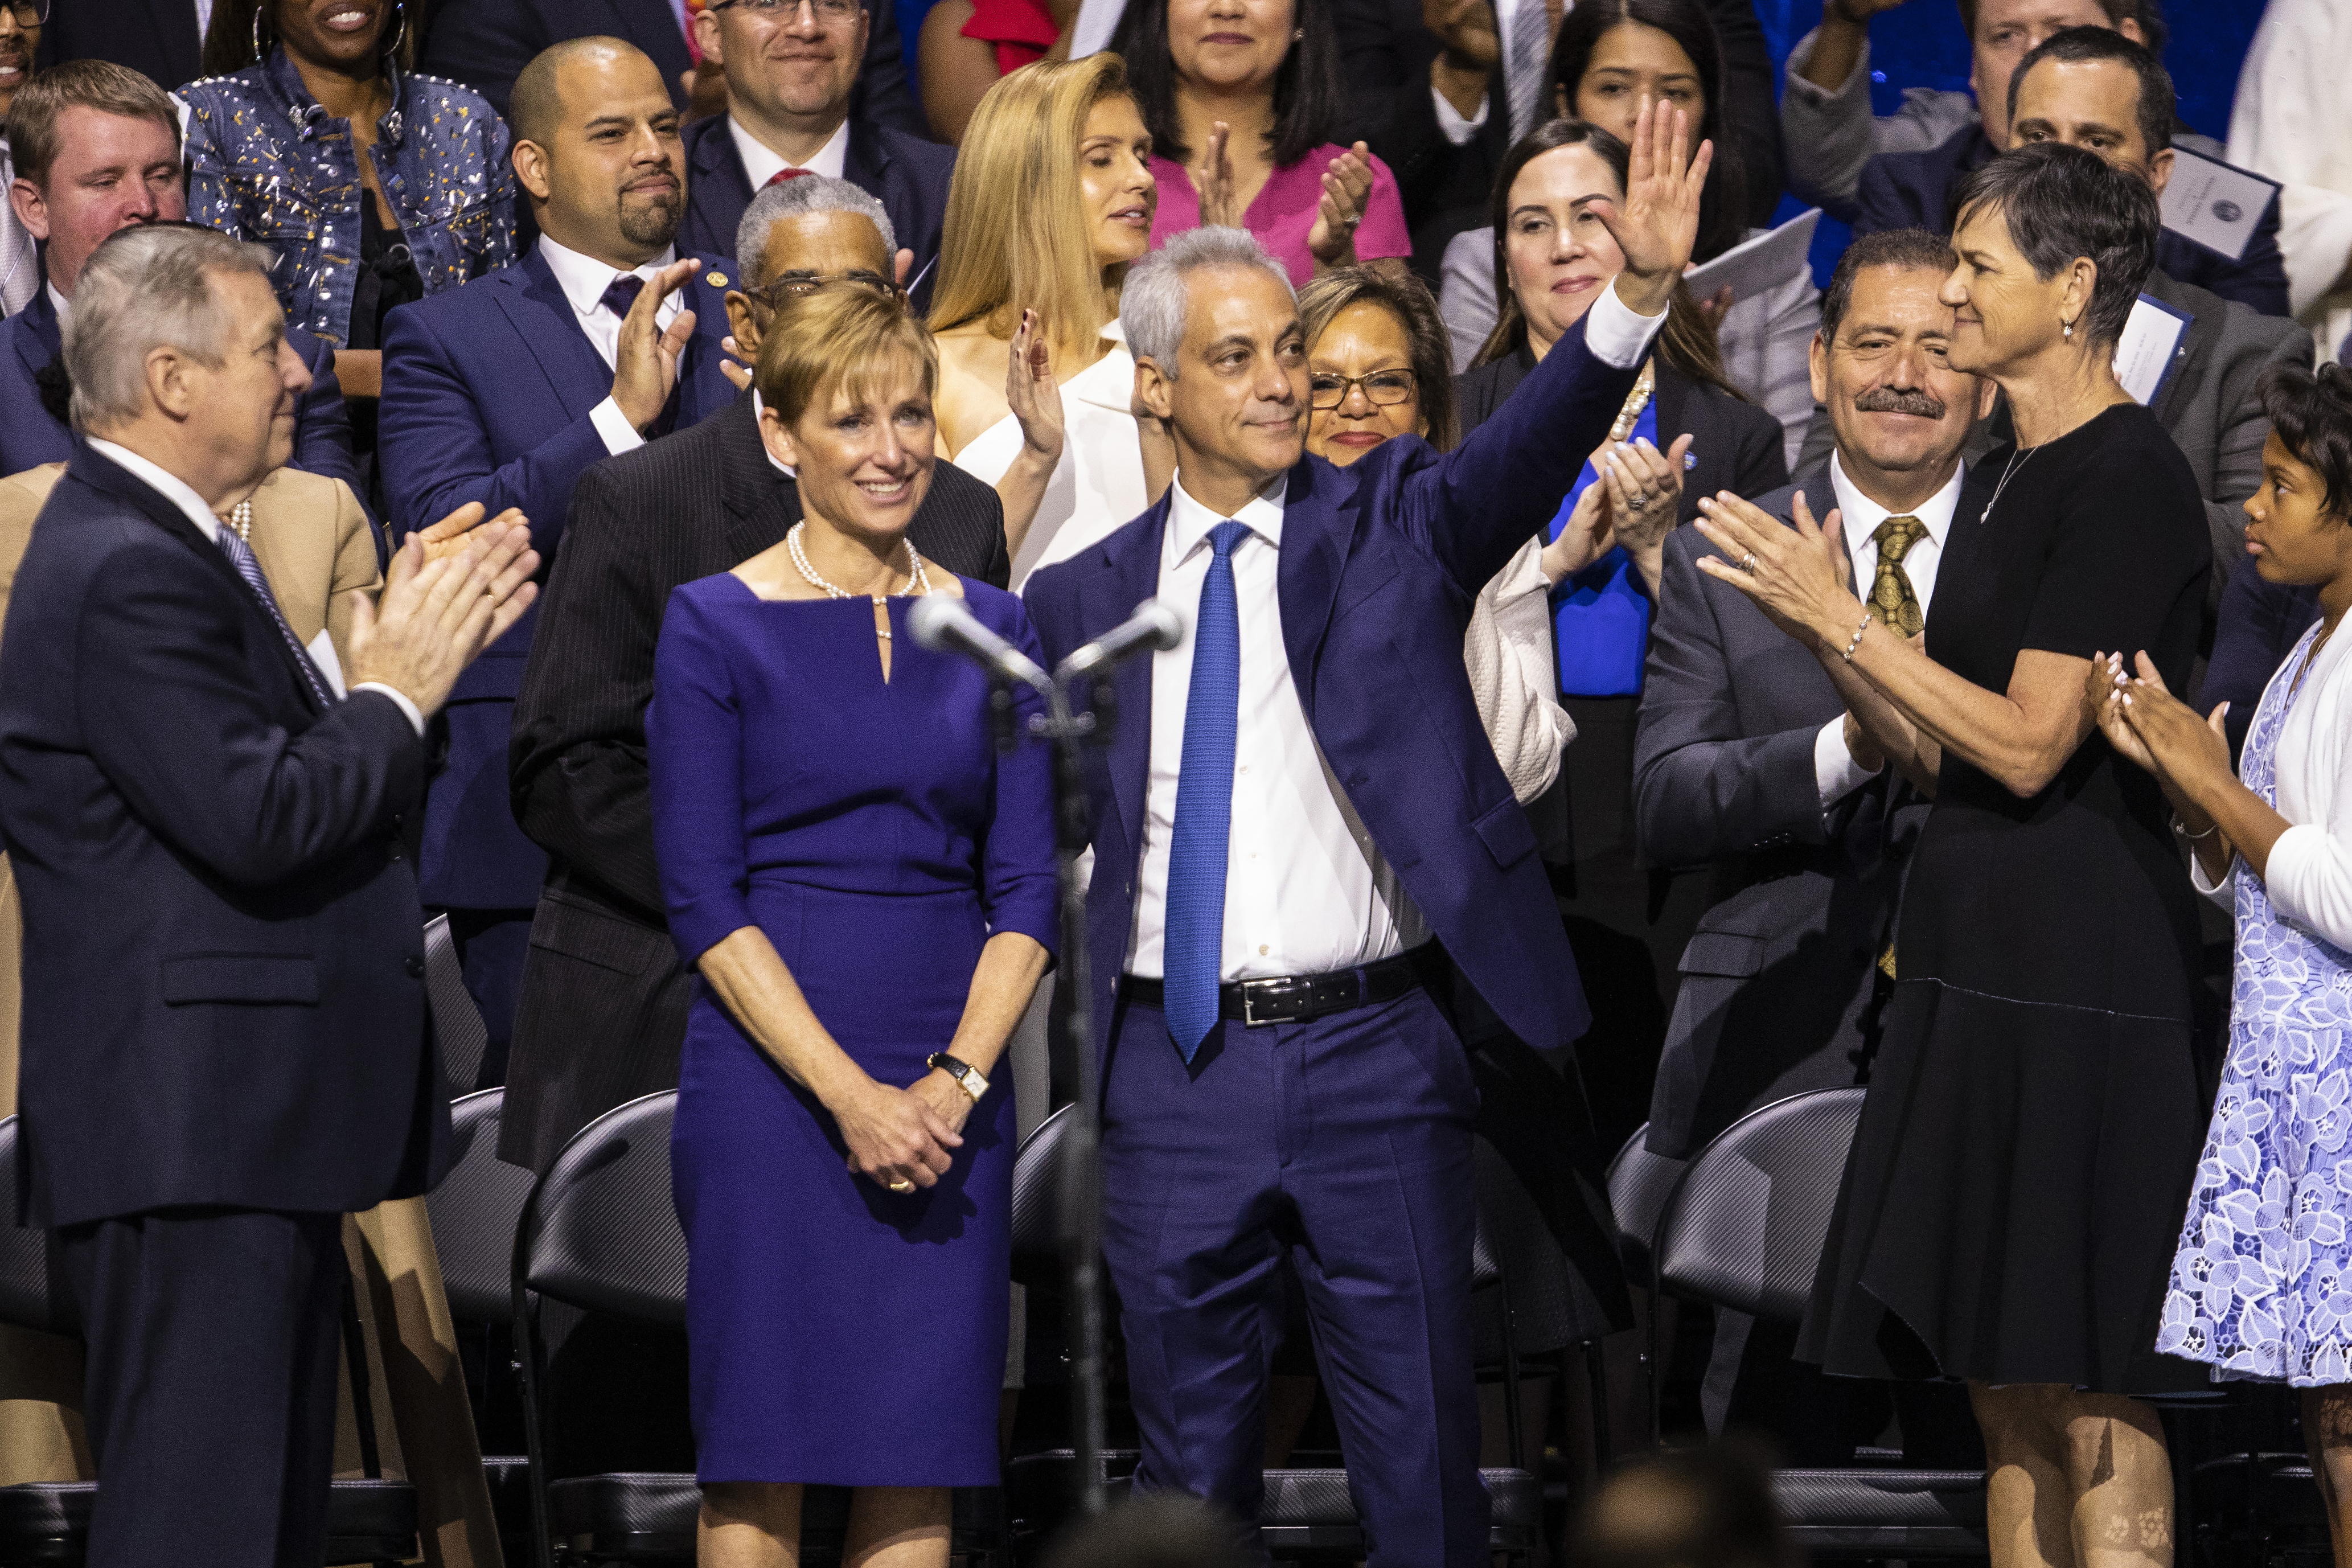 Former Mayor Rahm Emanuel and his wife Amy Rule are applauded for their service to the city during the inauguration ceremony for Lori Lightfoot at the Wintrust Arena on May 20, 2019. Emanuel, in an edgy speech at the Gridiron Club and Foundation winter dinner Saturday, Dec. 7, took some swings at ex-New York Mayor Michael Bloomberg.